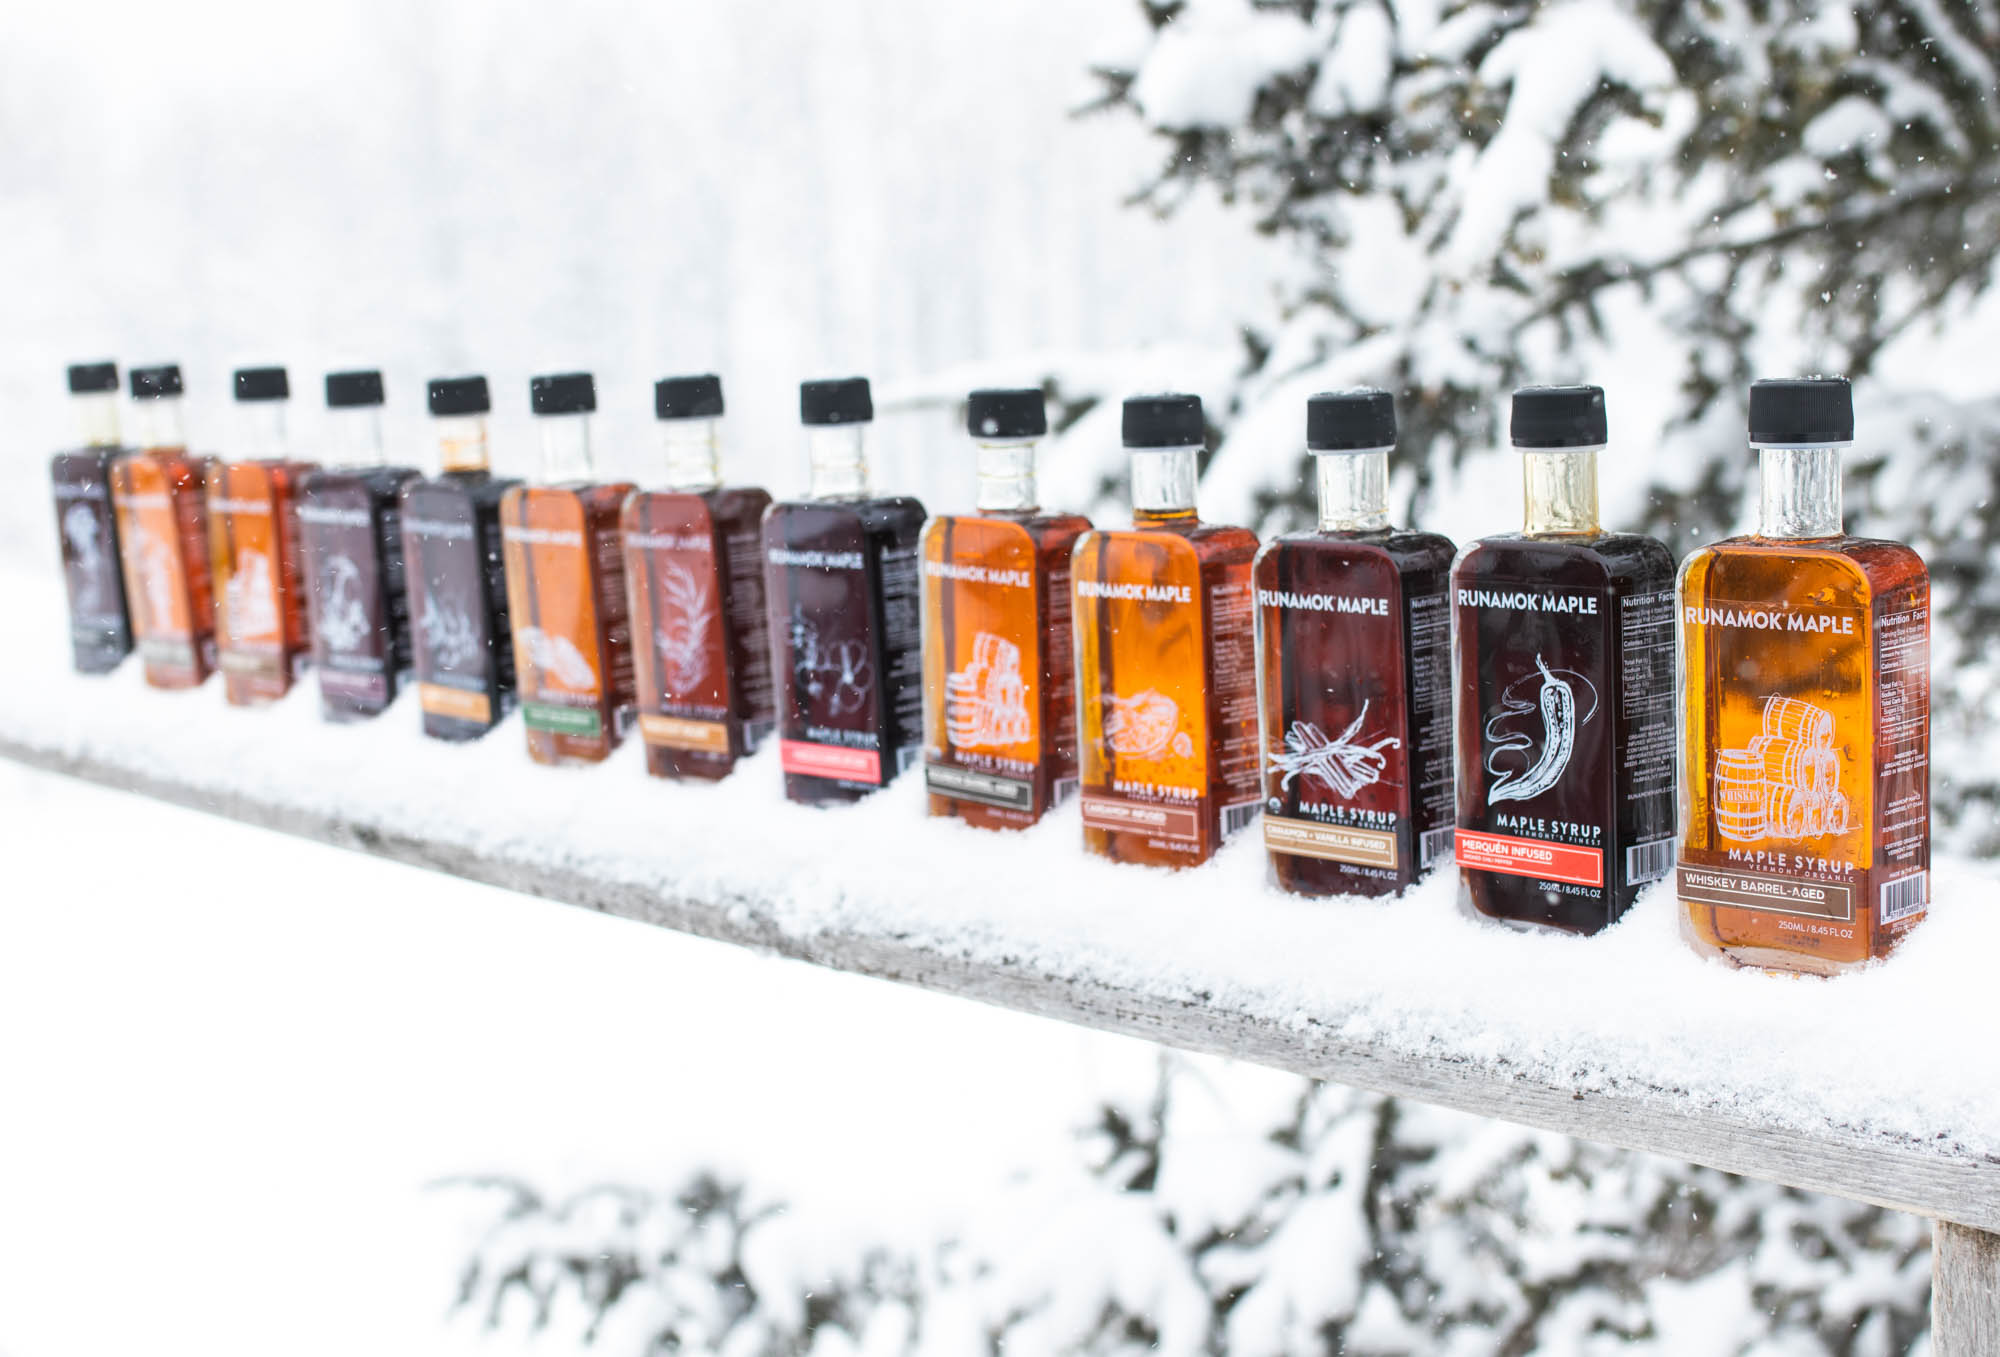 Runamok maple syrups lined up in snow